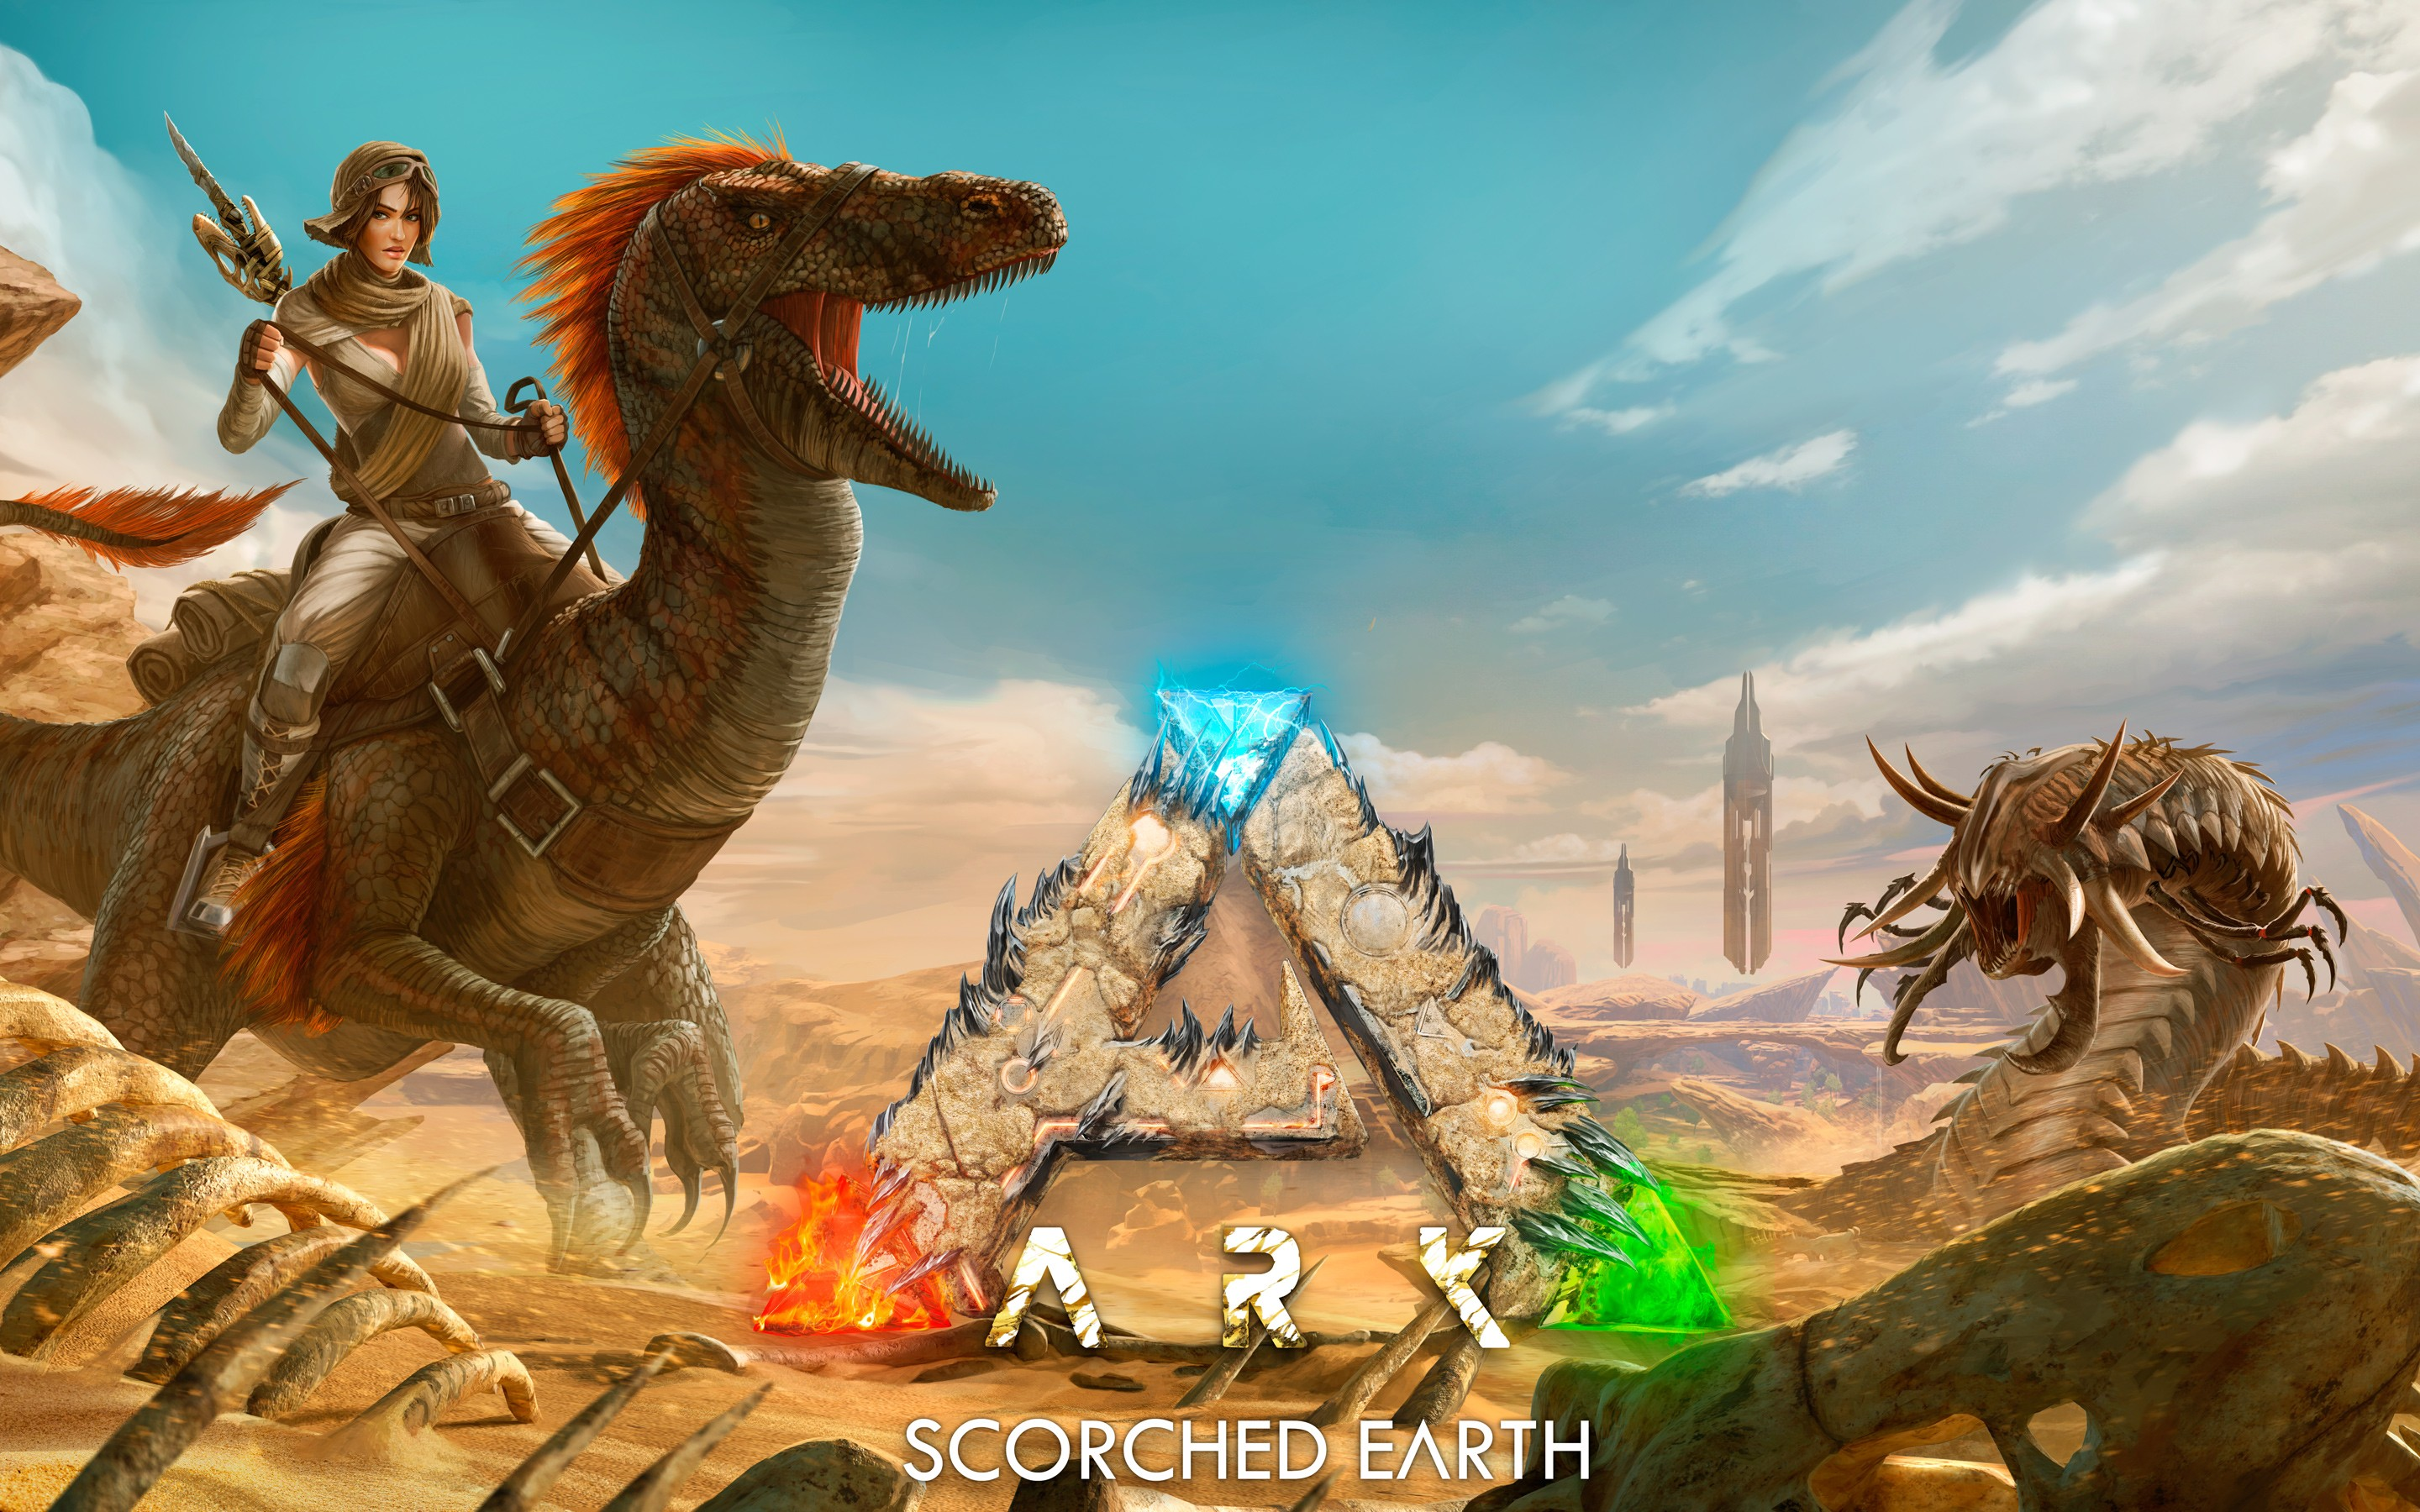 Latest Full Hd Wallpapers 1080p Ark Scorched Earth 4k 8k Wallpapers Hd Wallpapers Id